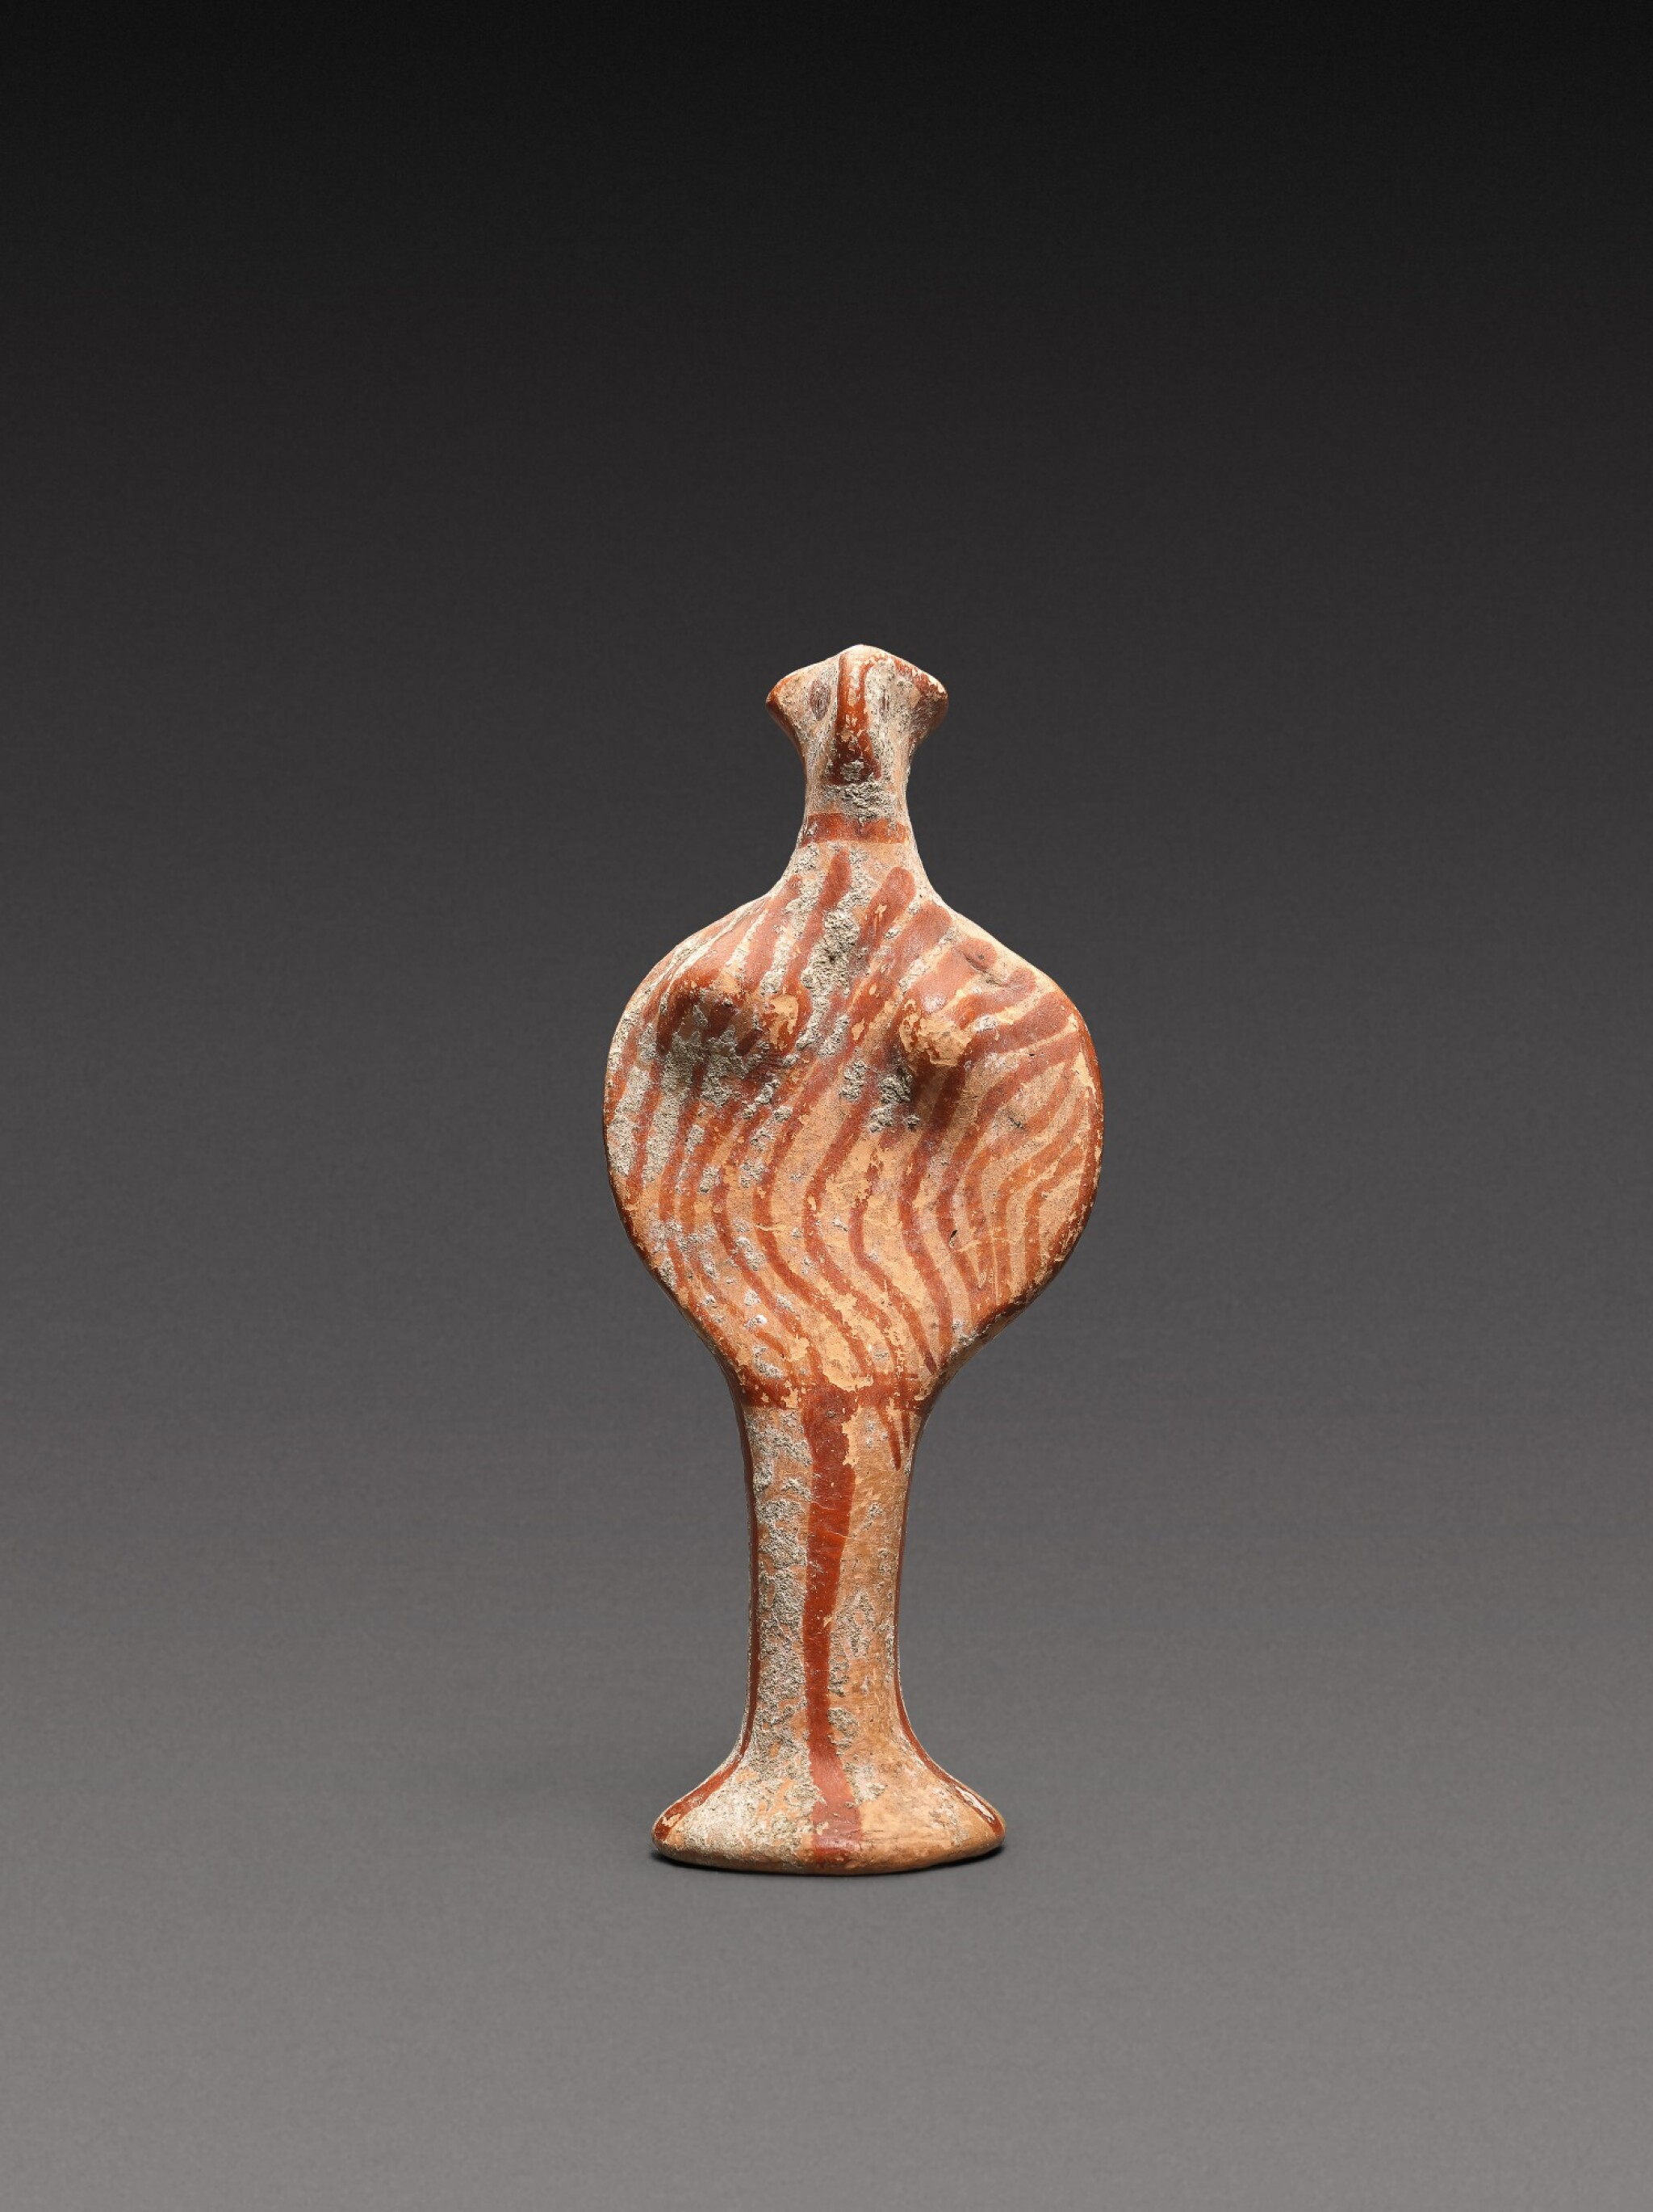 View full screen - View 1 of Lot 32. A Mycenaean Terracotta Figure of a Goddess, circa 1400-1300 B.C..